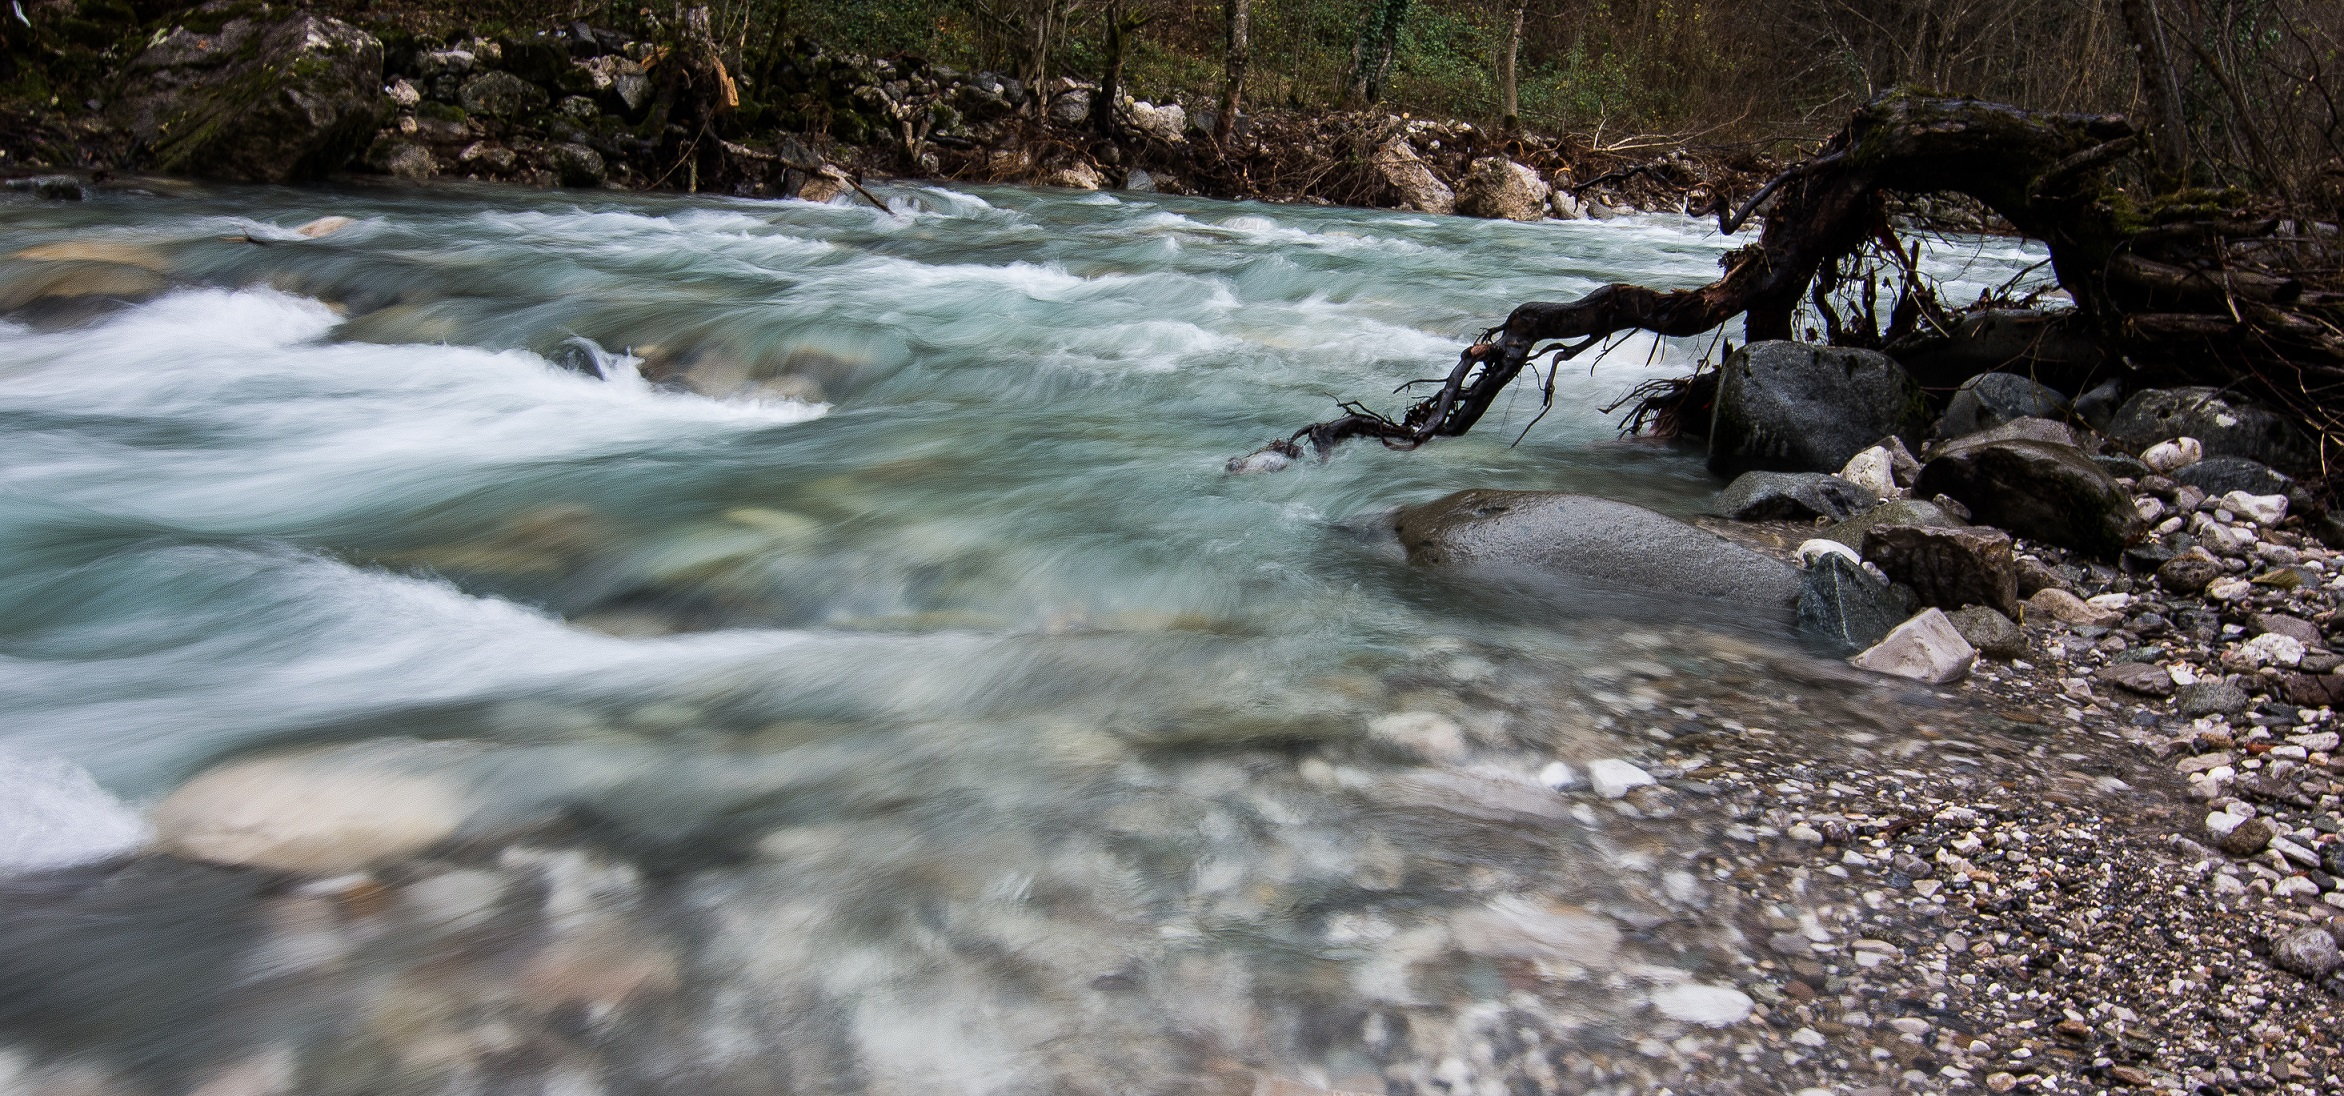 The Doljanka river in Bosnia and Herzegovina is at risk. Sign the petition! © Anes Podic